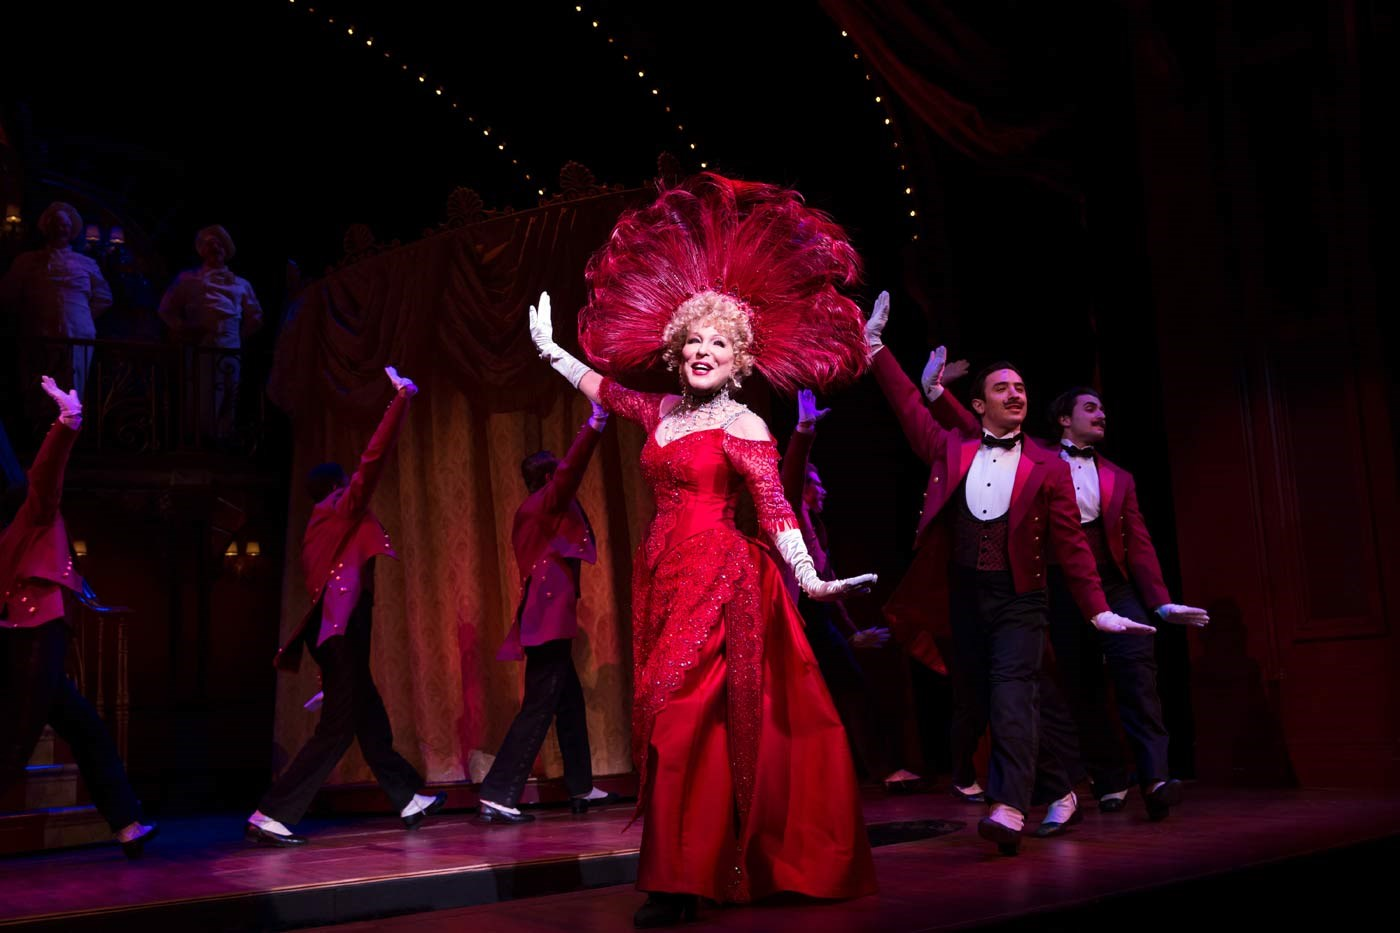 Bette Midler Gives Final Bow to Understudy Christian Dante White